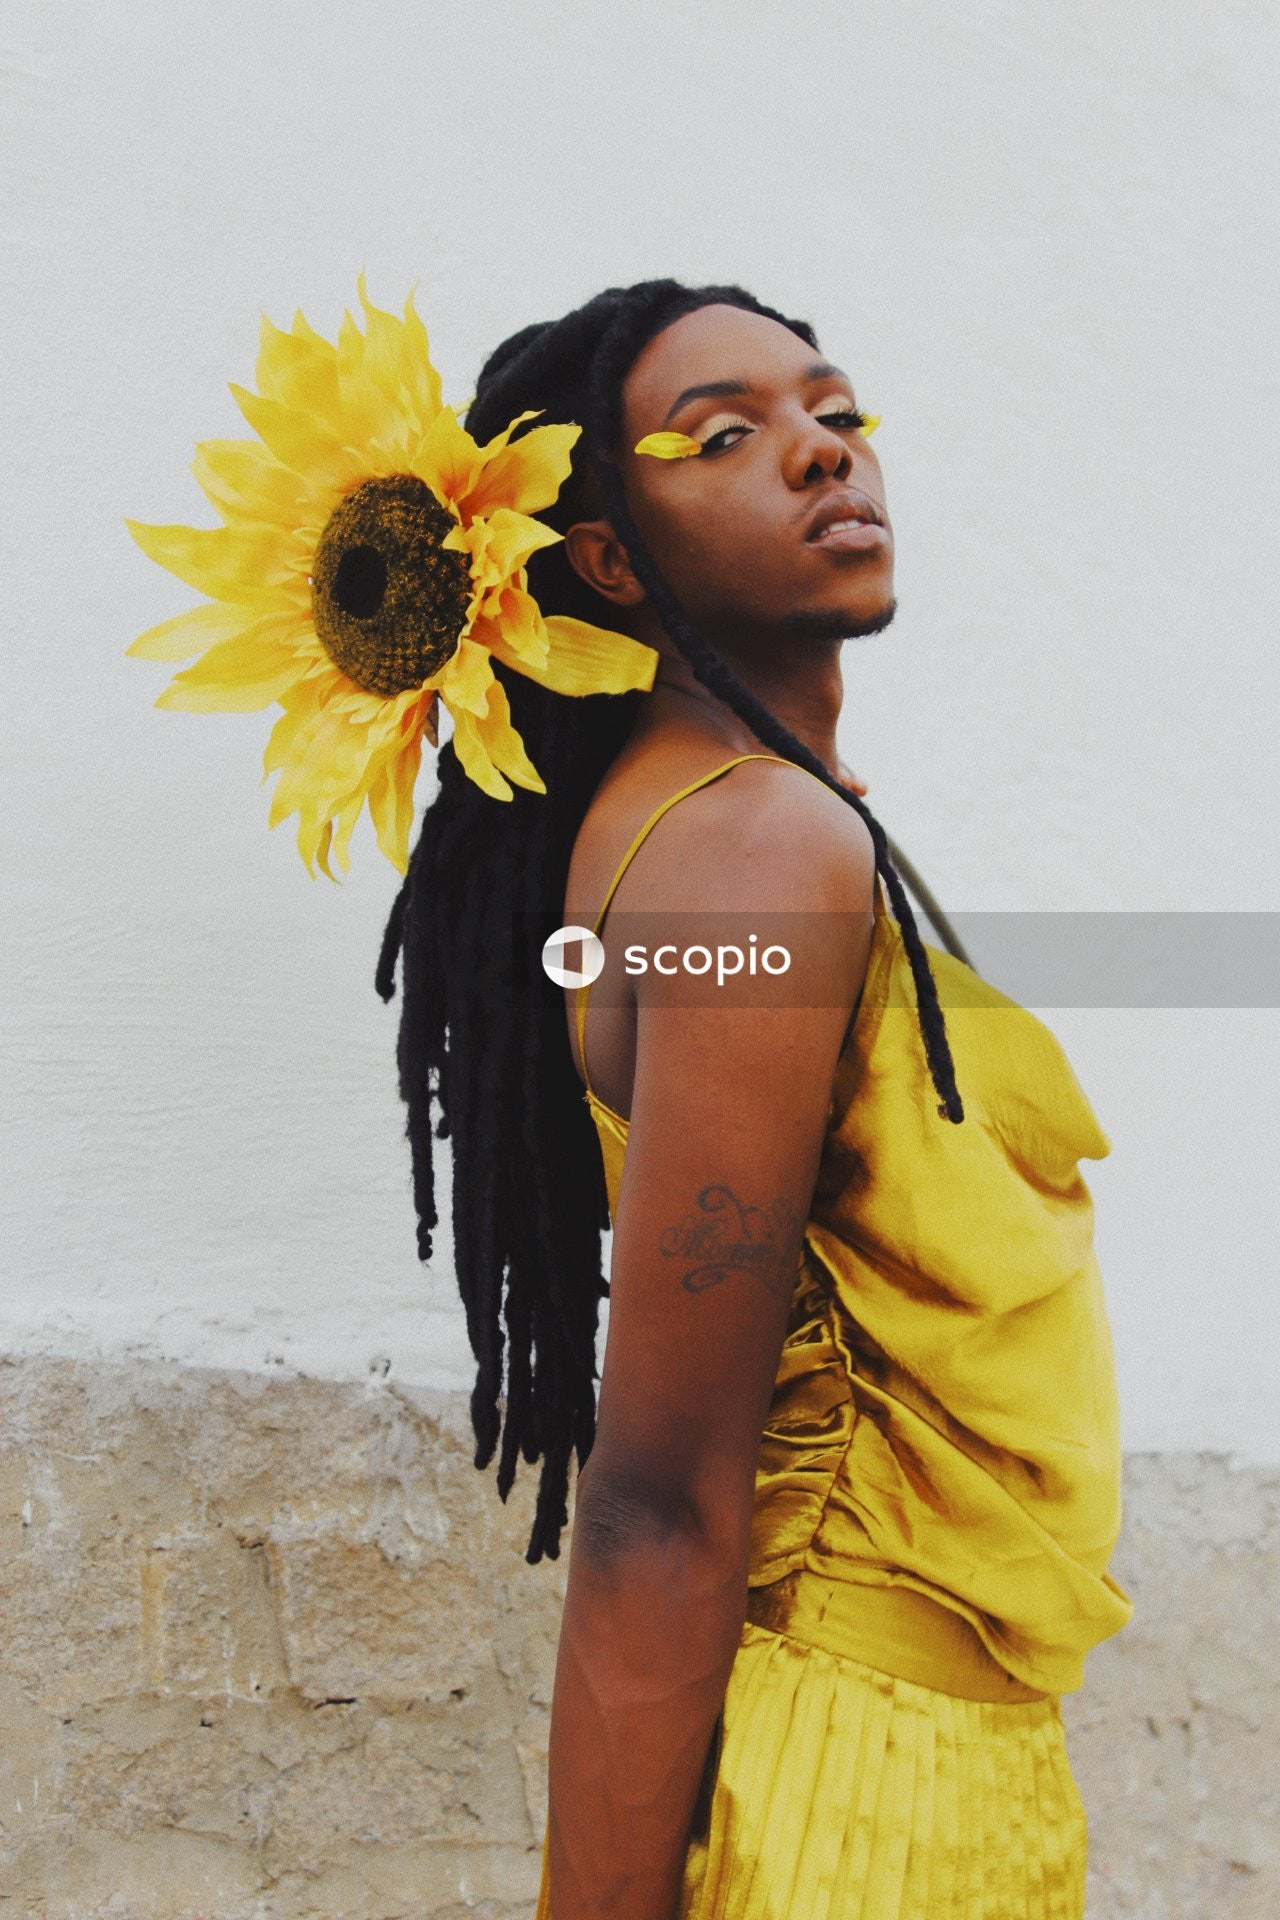 Man with makeup and in yellow dress and a sunflower in their dreadlocks